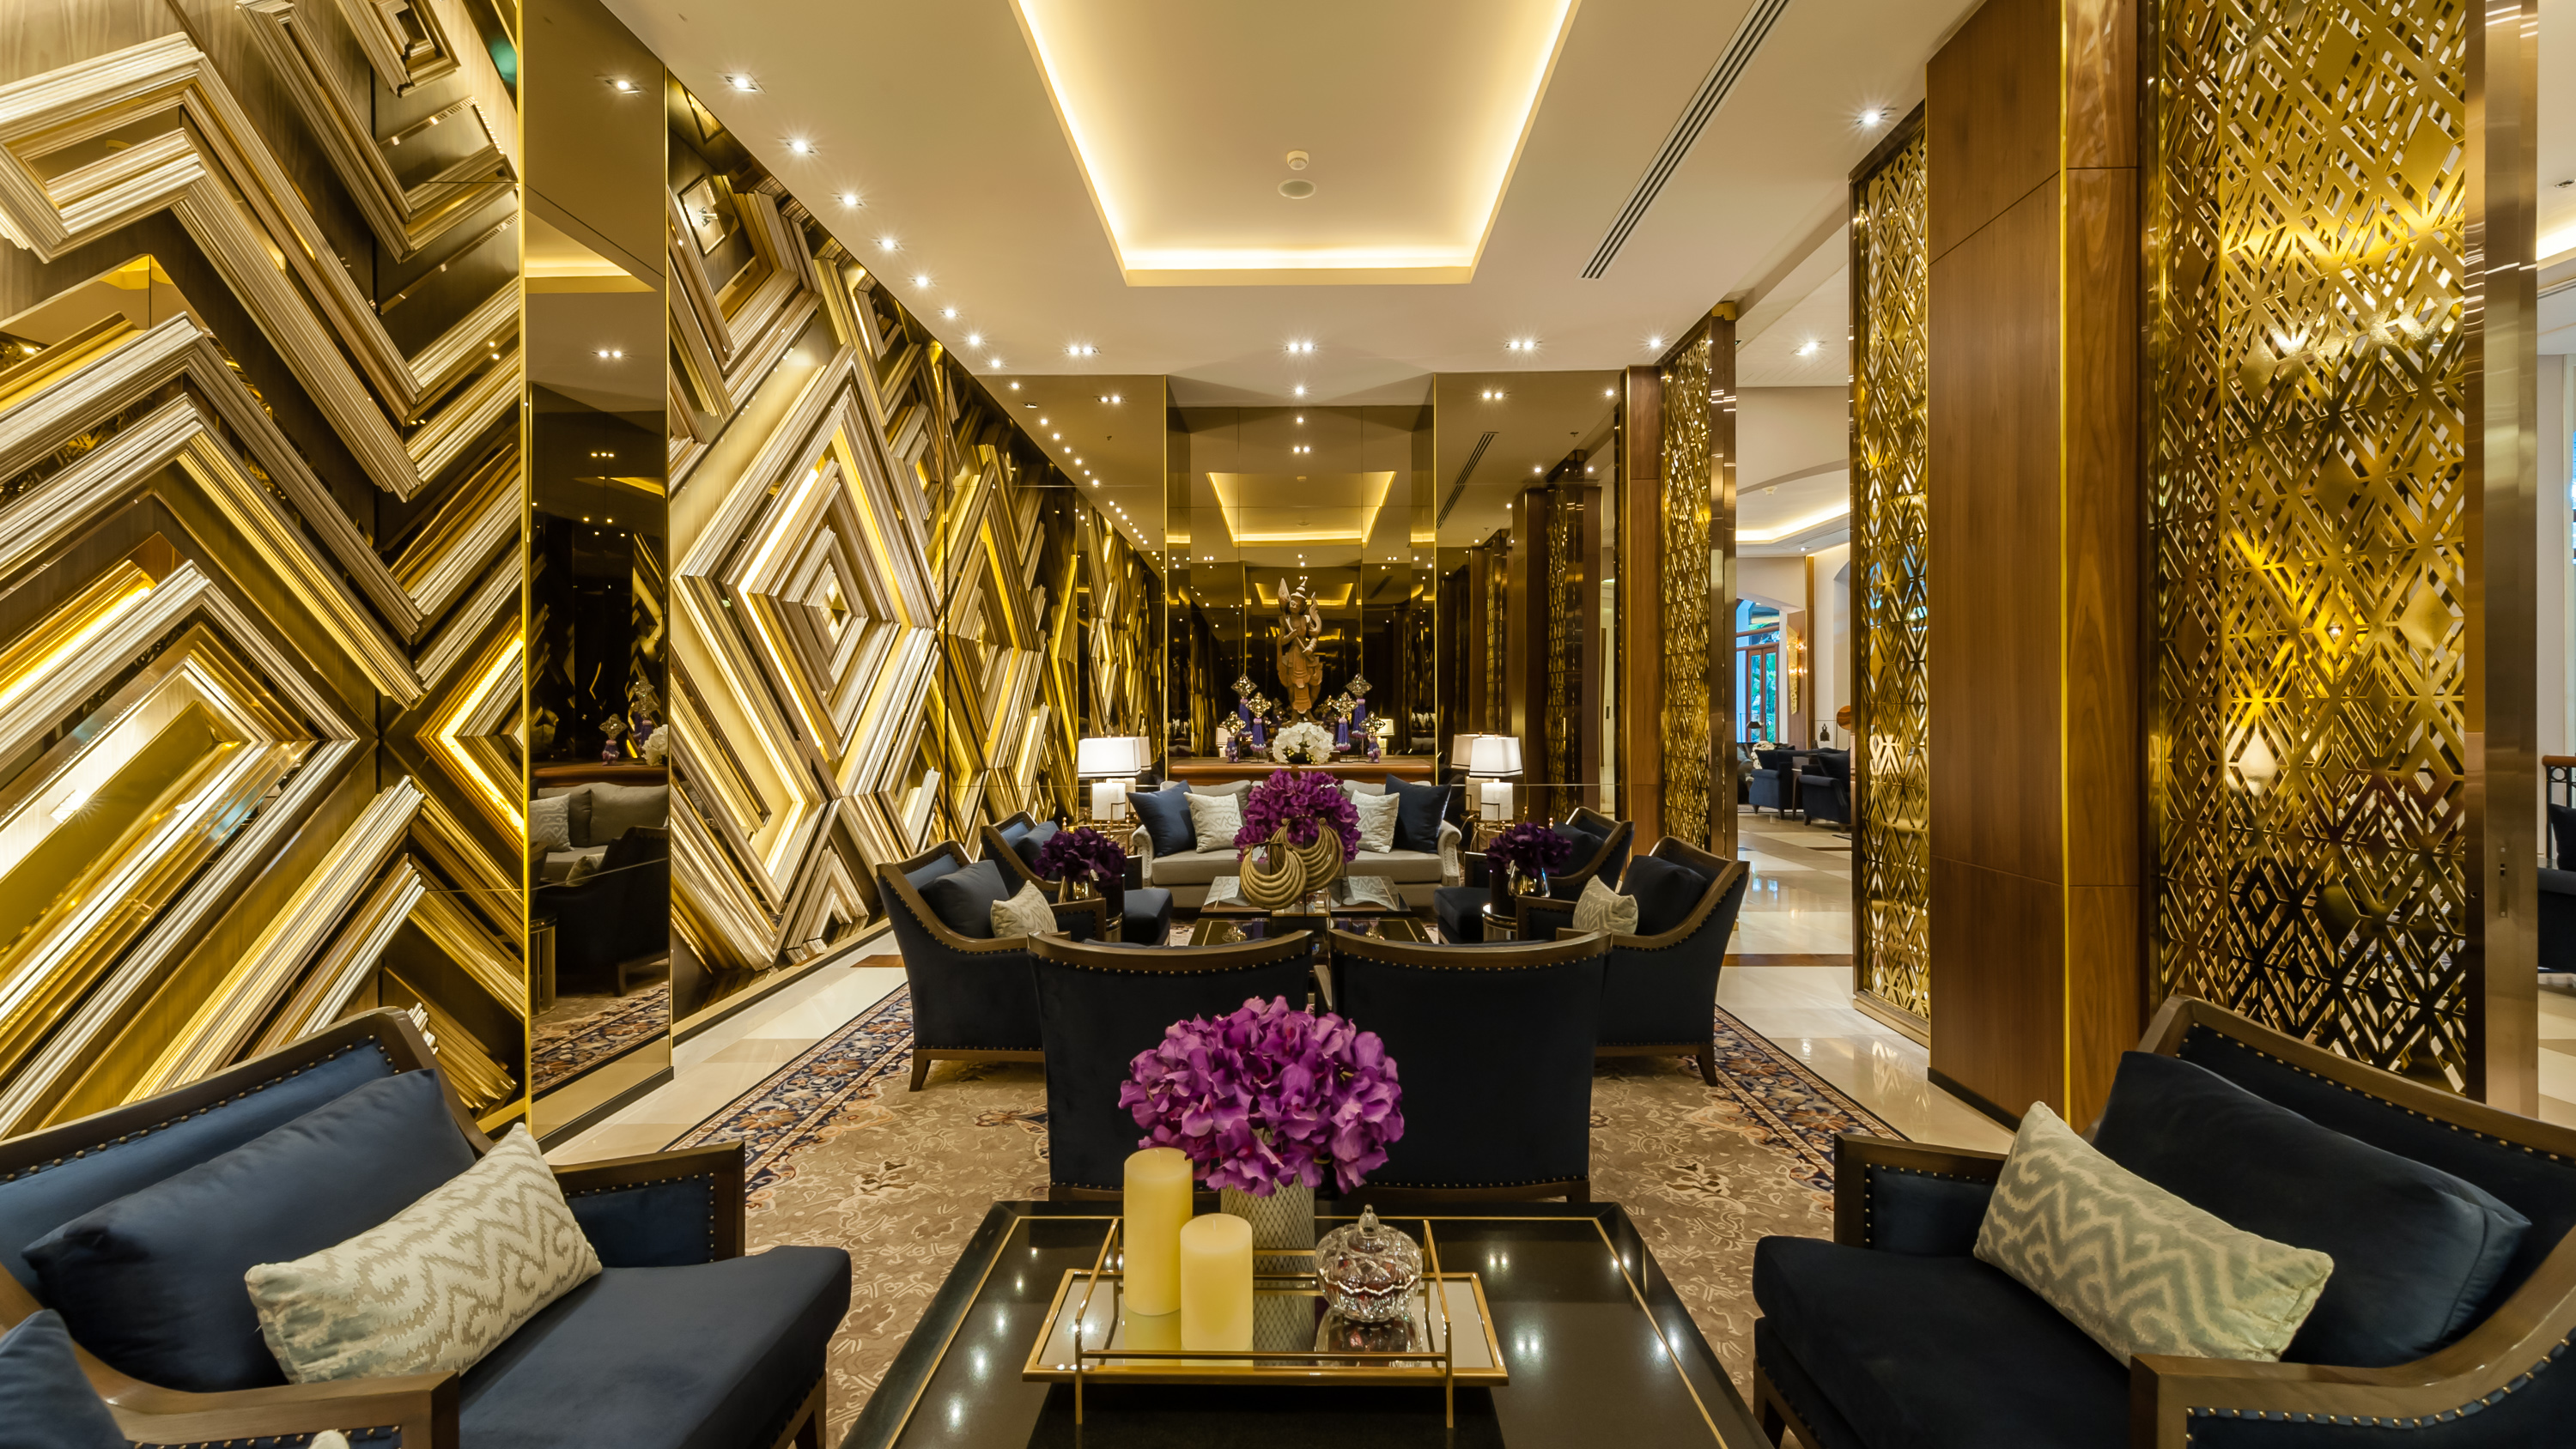 Mesmerizing Interior Decor at Chatrium Hotel Royal Lake Yangon